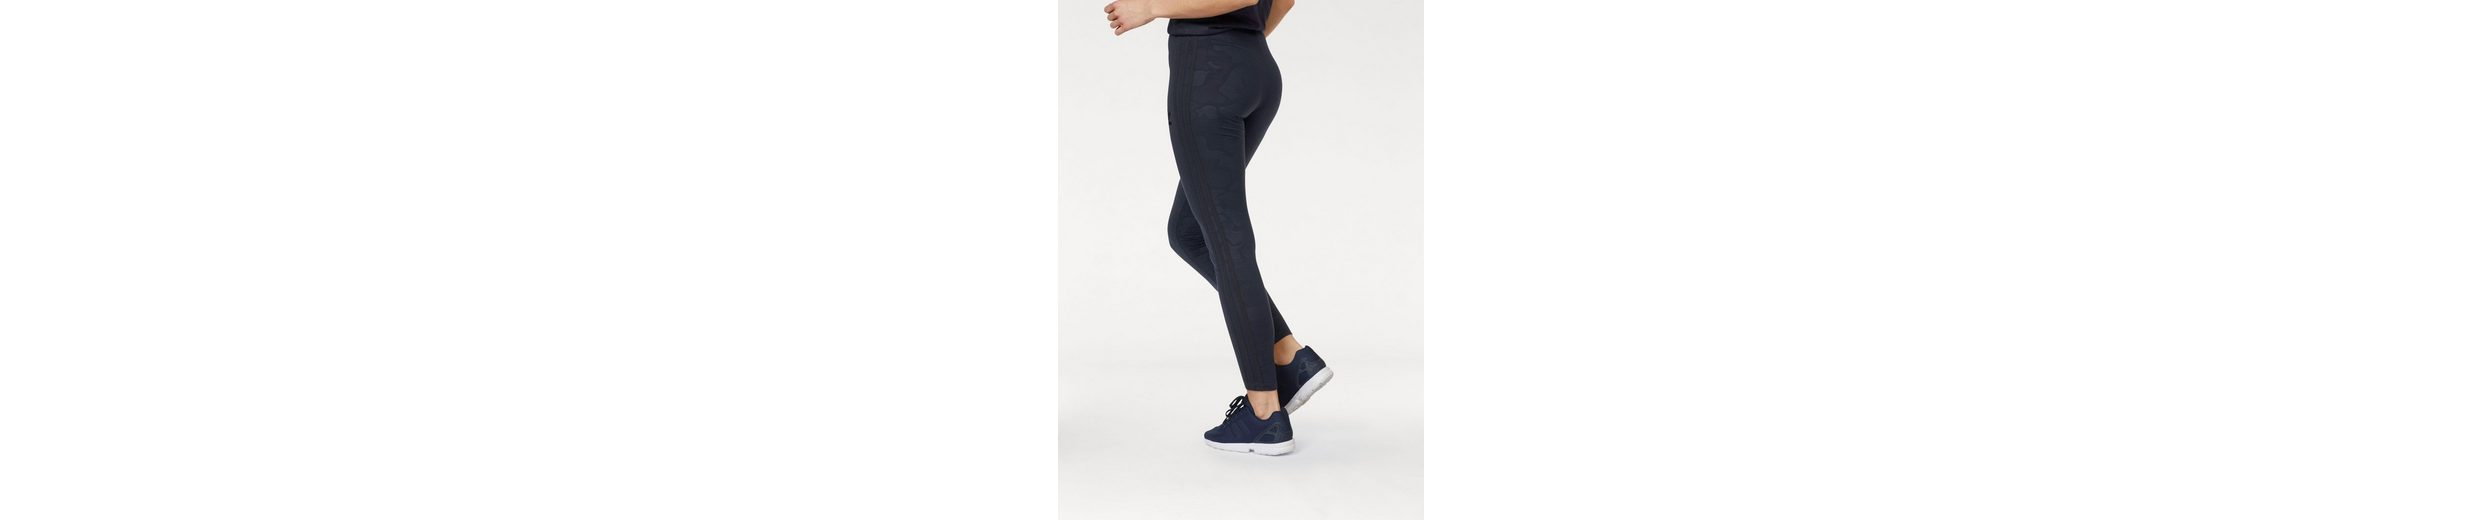 adidas 3 STRIPES adidas 3 Leggings STRIPES Originals LEGGINGS adidas Originals Originals Leggings LEGGINGS Leggings q8CqX